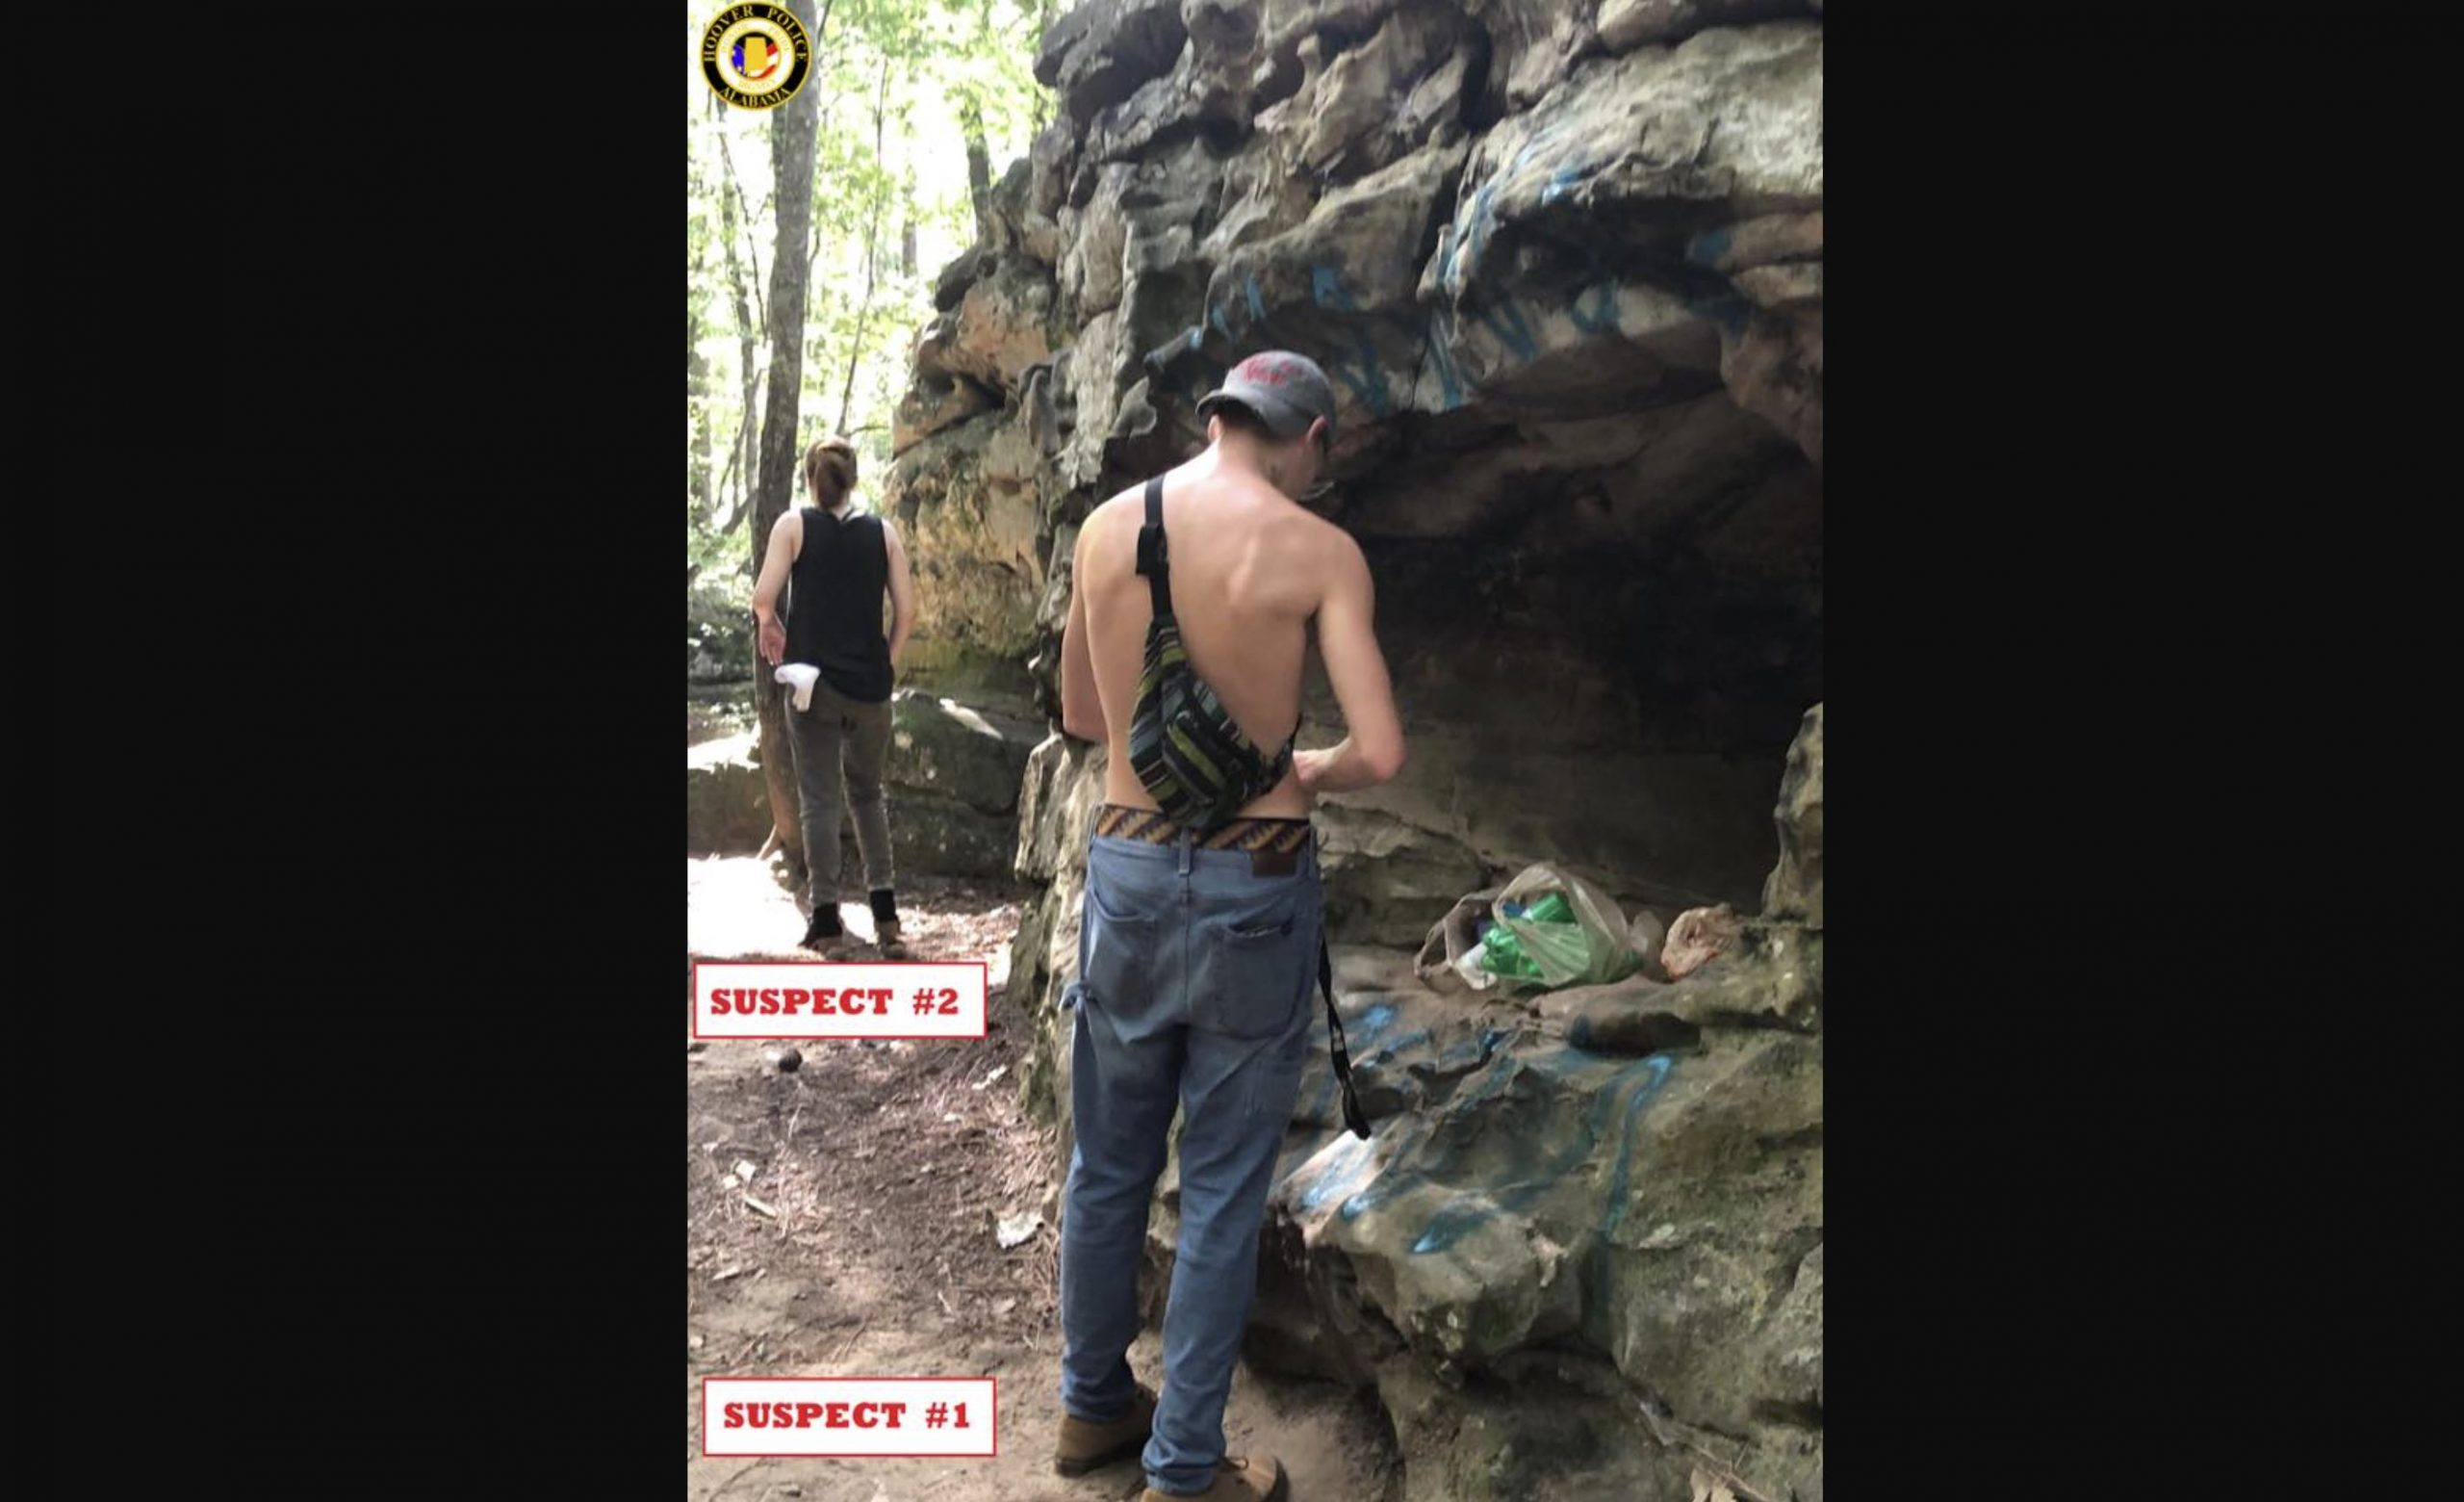 2 wanted for questioning after graffiti painted on boulders at Moss Rock Preserve